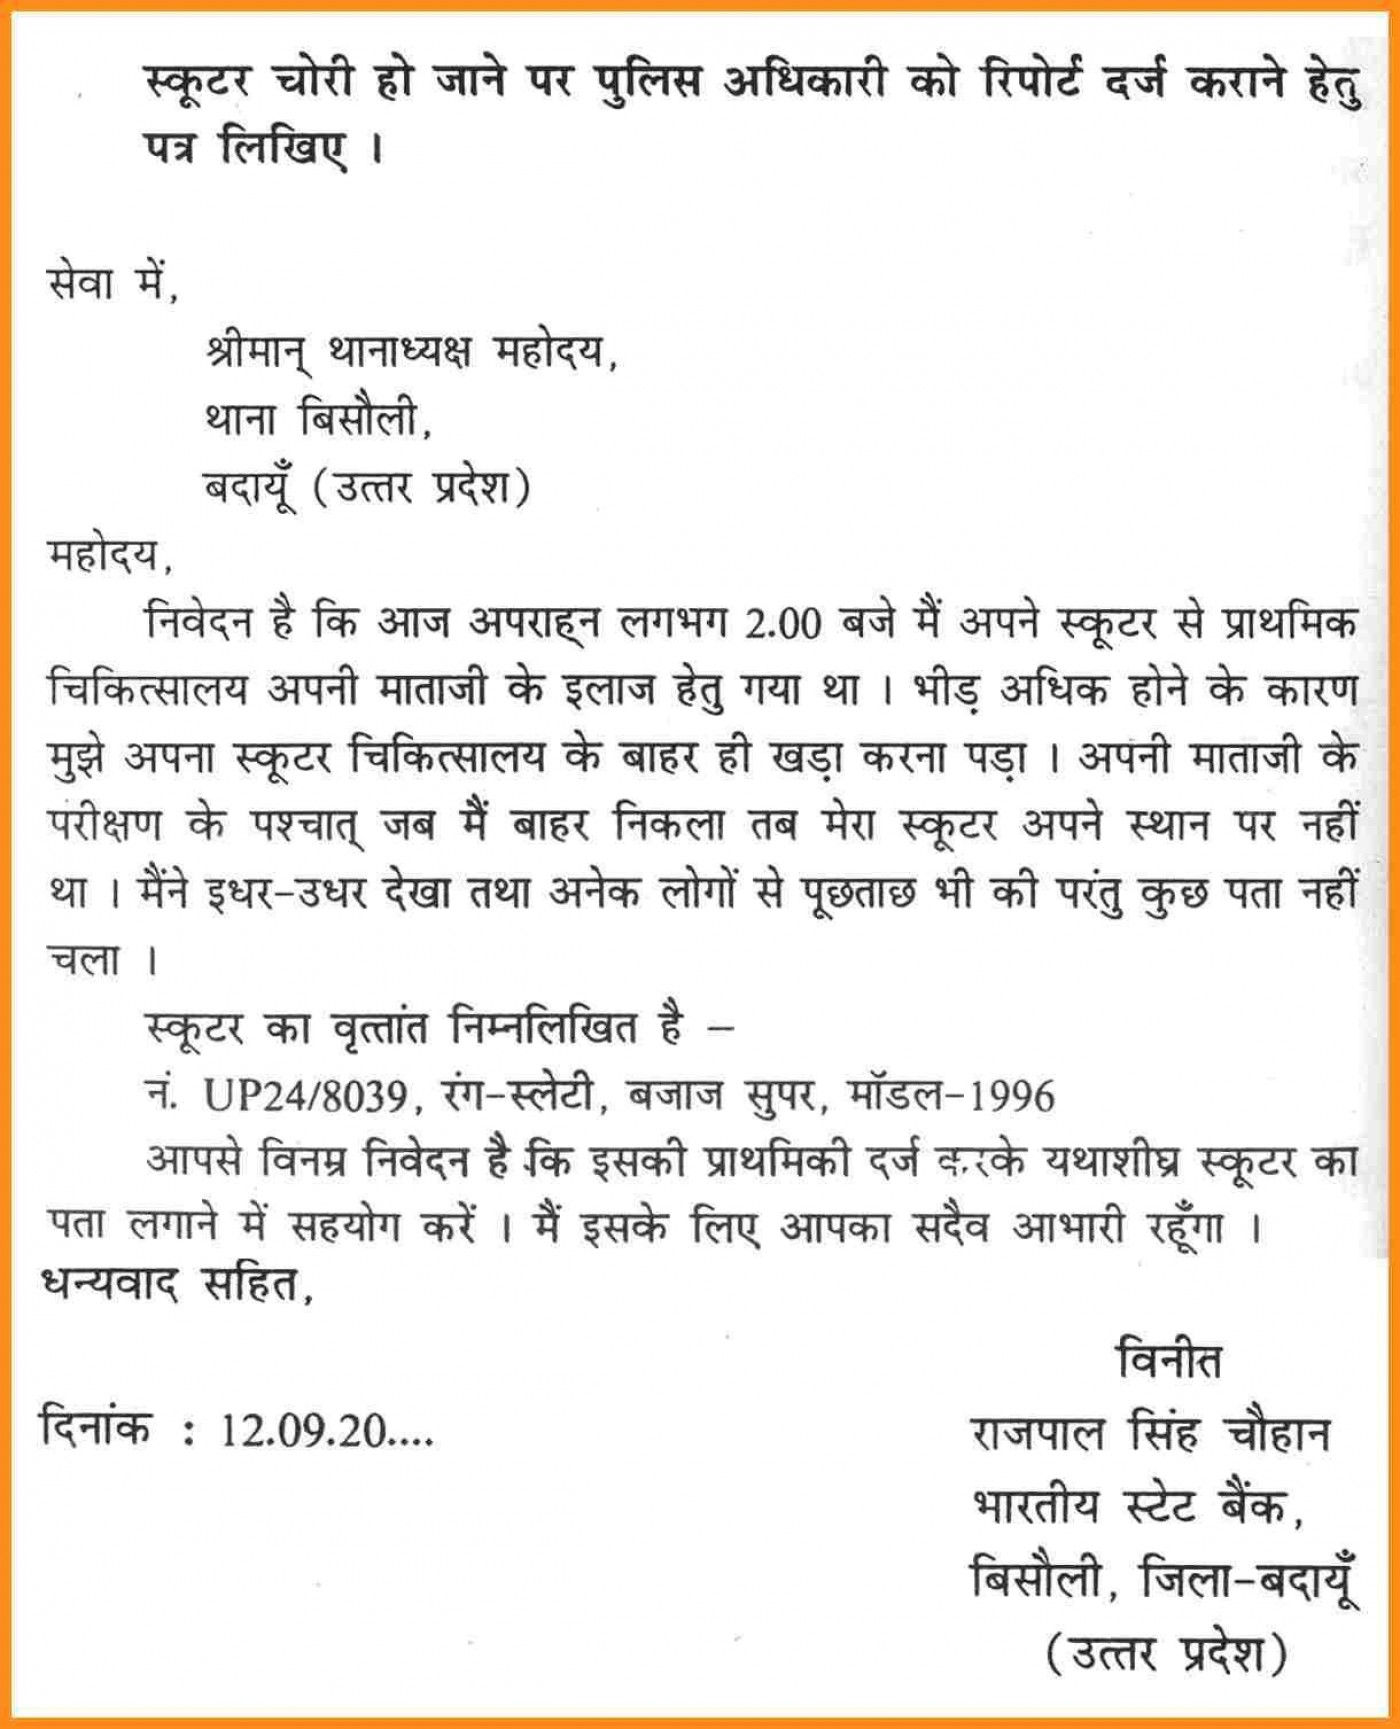 007 Unbelievable Hindi Letter Writing Format Pdf Free Download Inspiration 1400